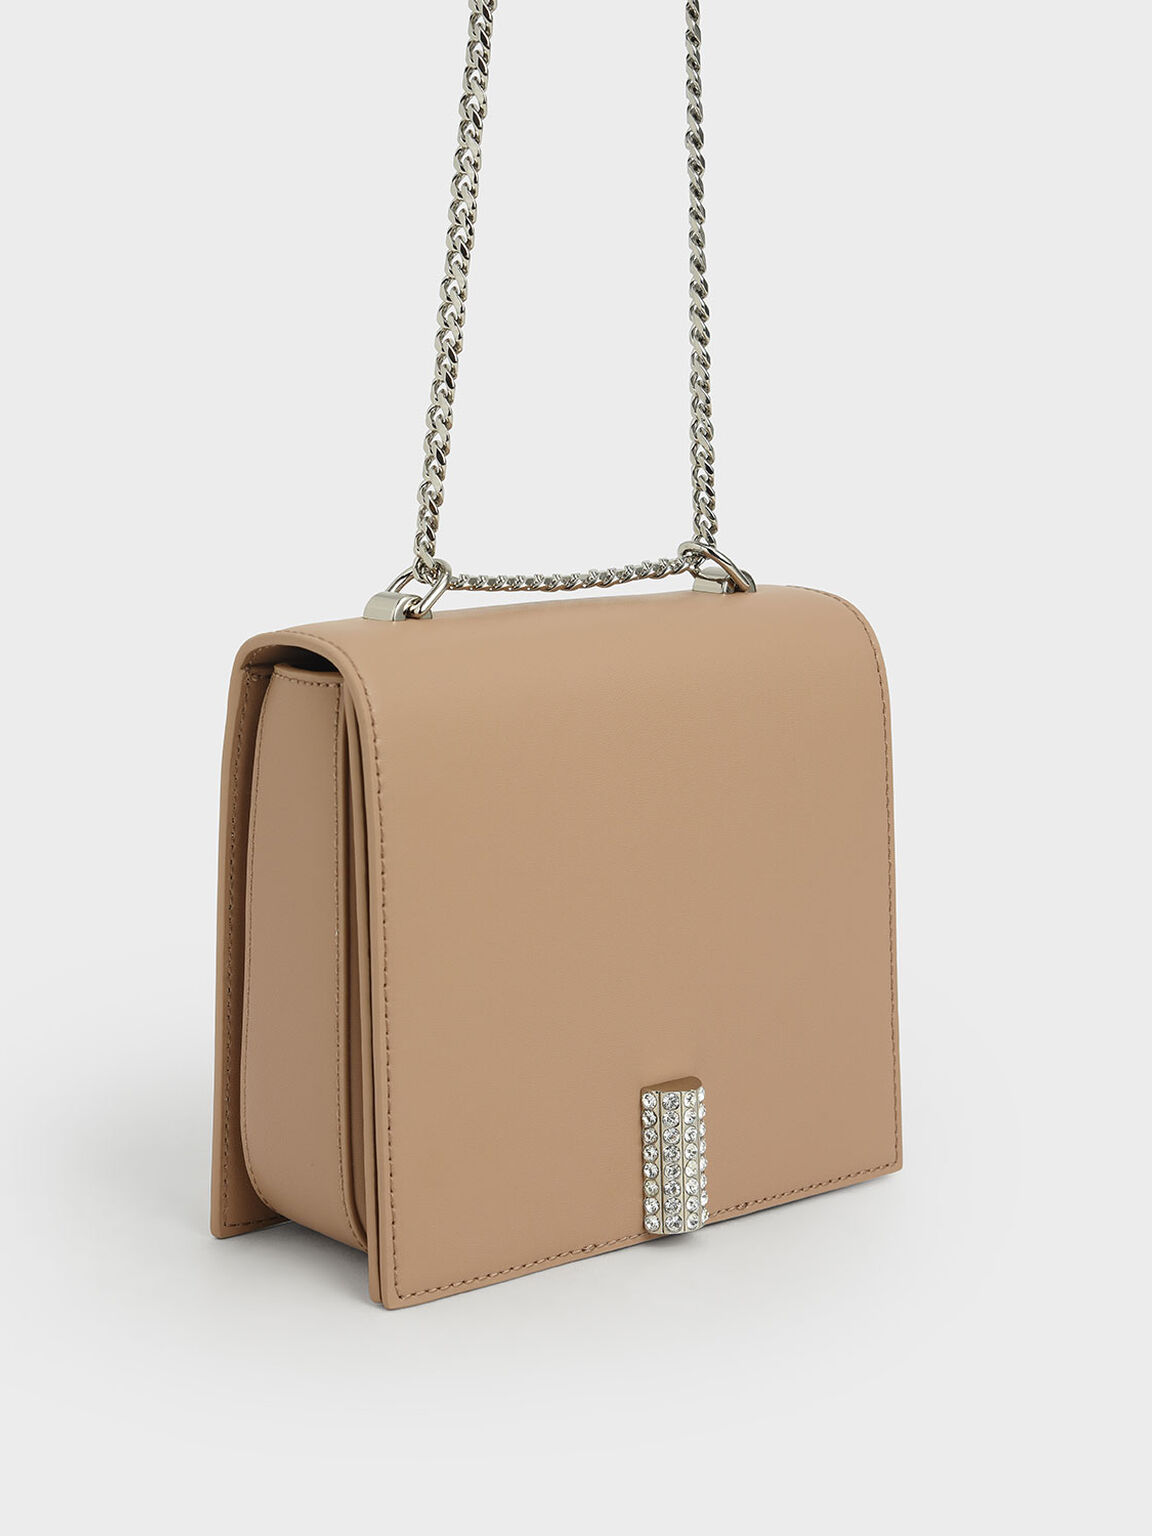 Leather Chain Strap Boxy Bag, Nude, hi-res